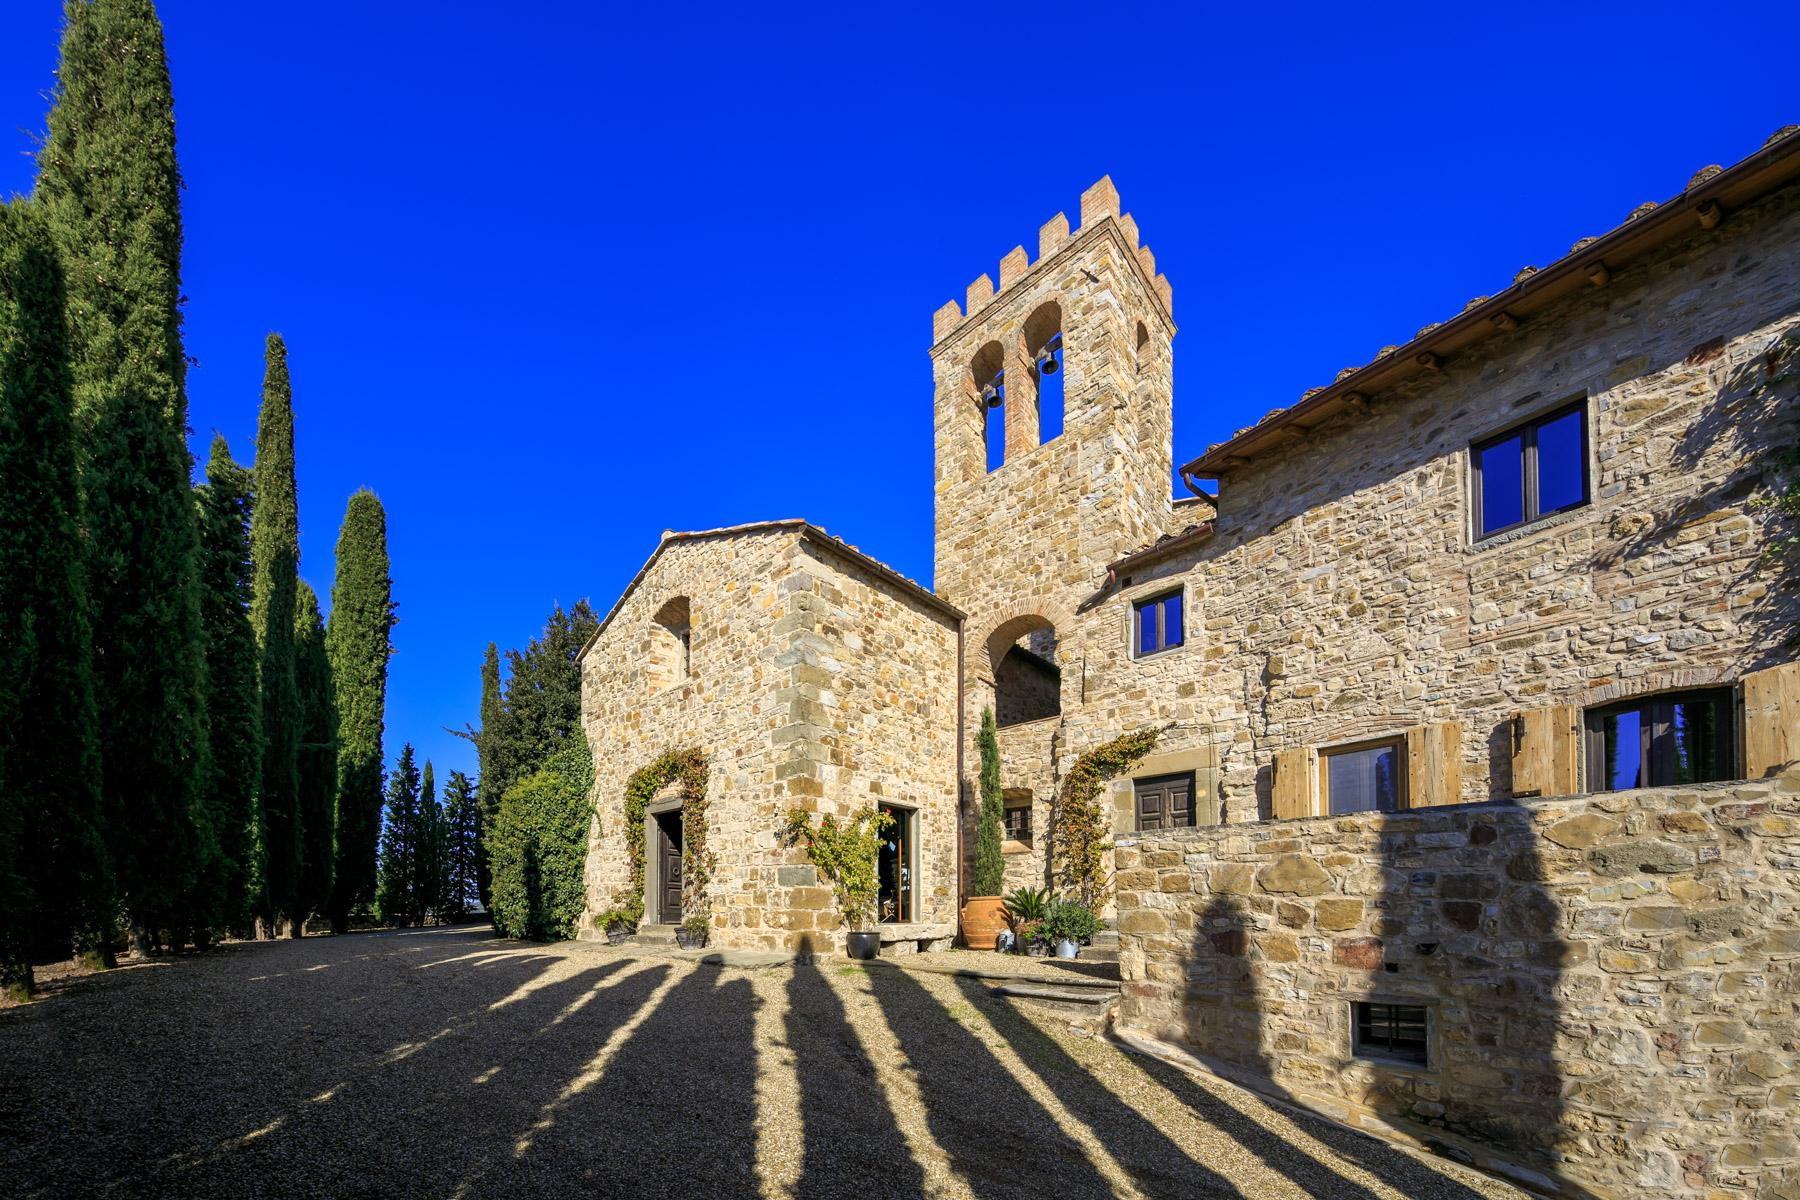 Castle/Manor house near Radda in Chianti - 4